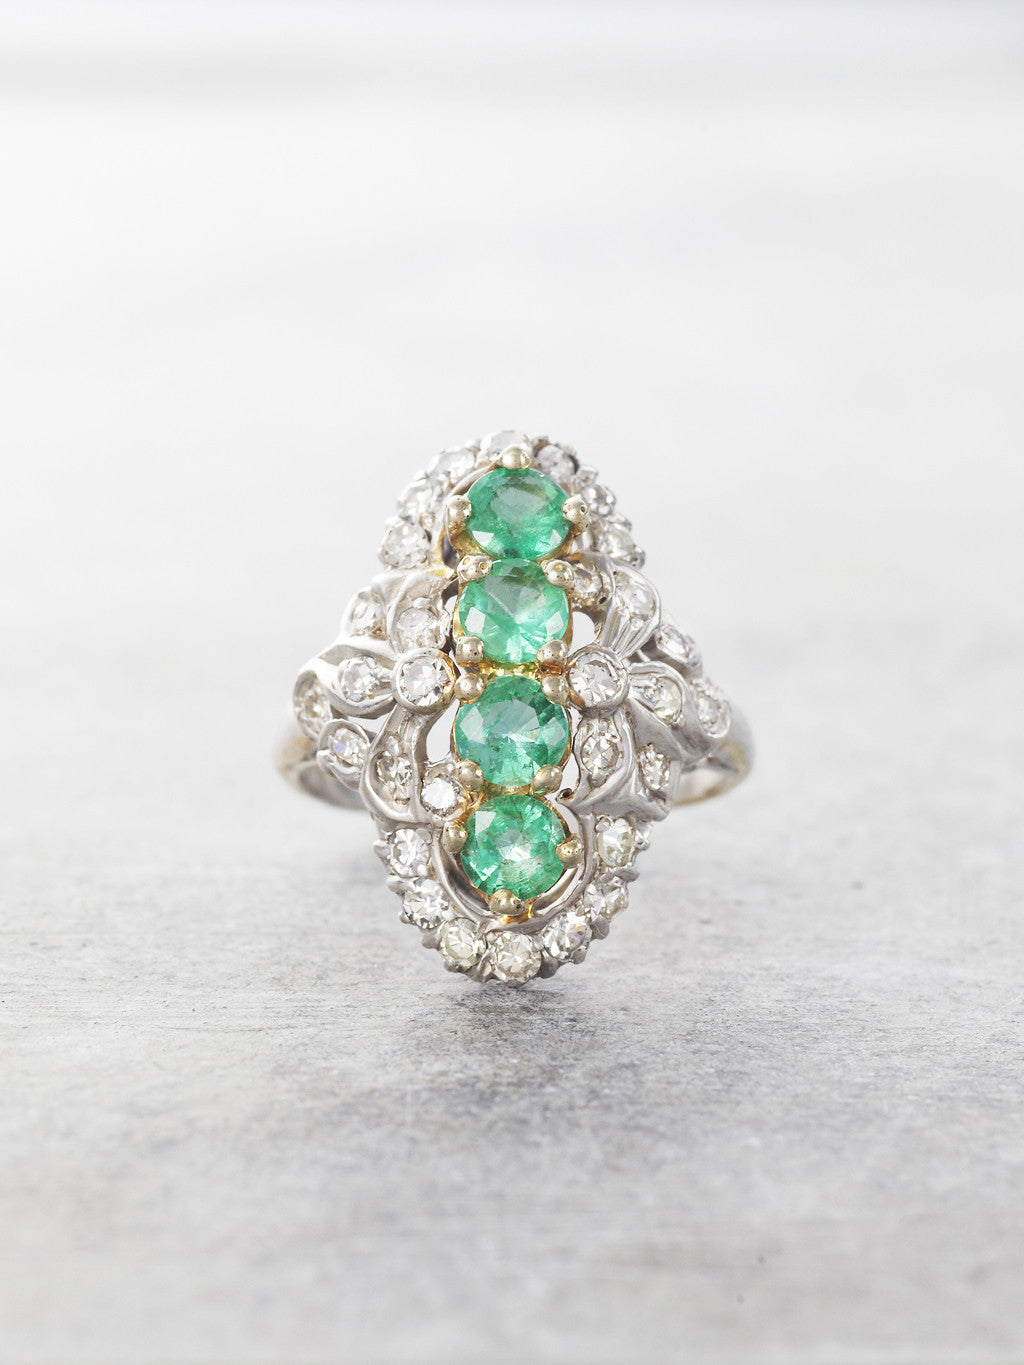 1920's Emerald & Diamond Heirloom Antique Ring